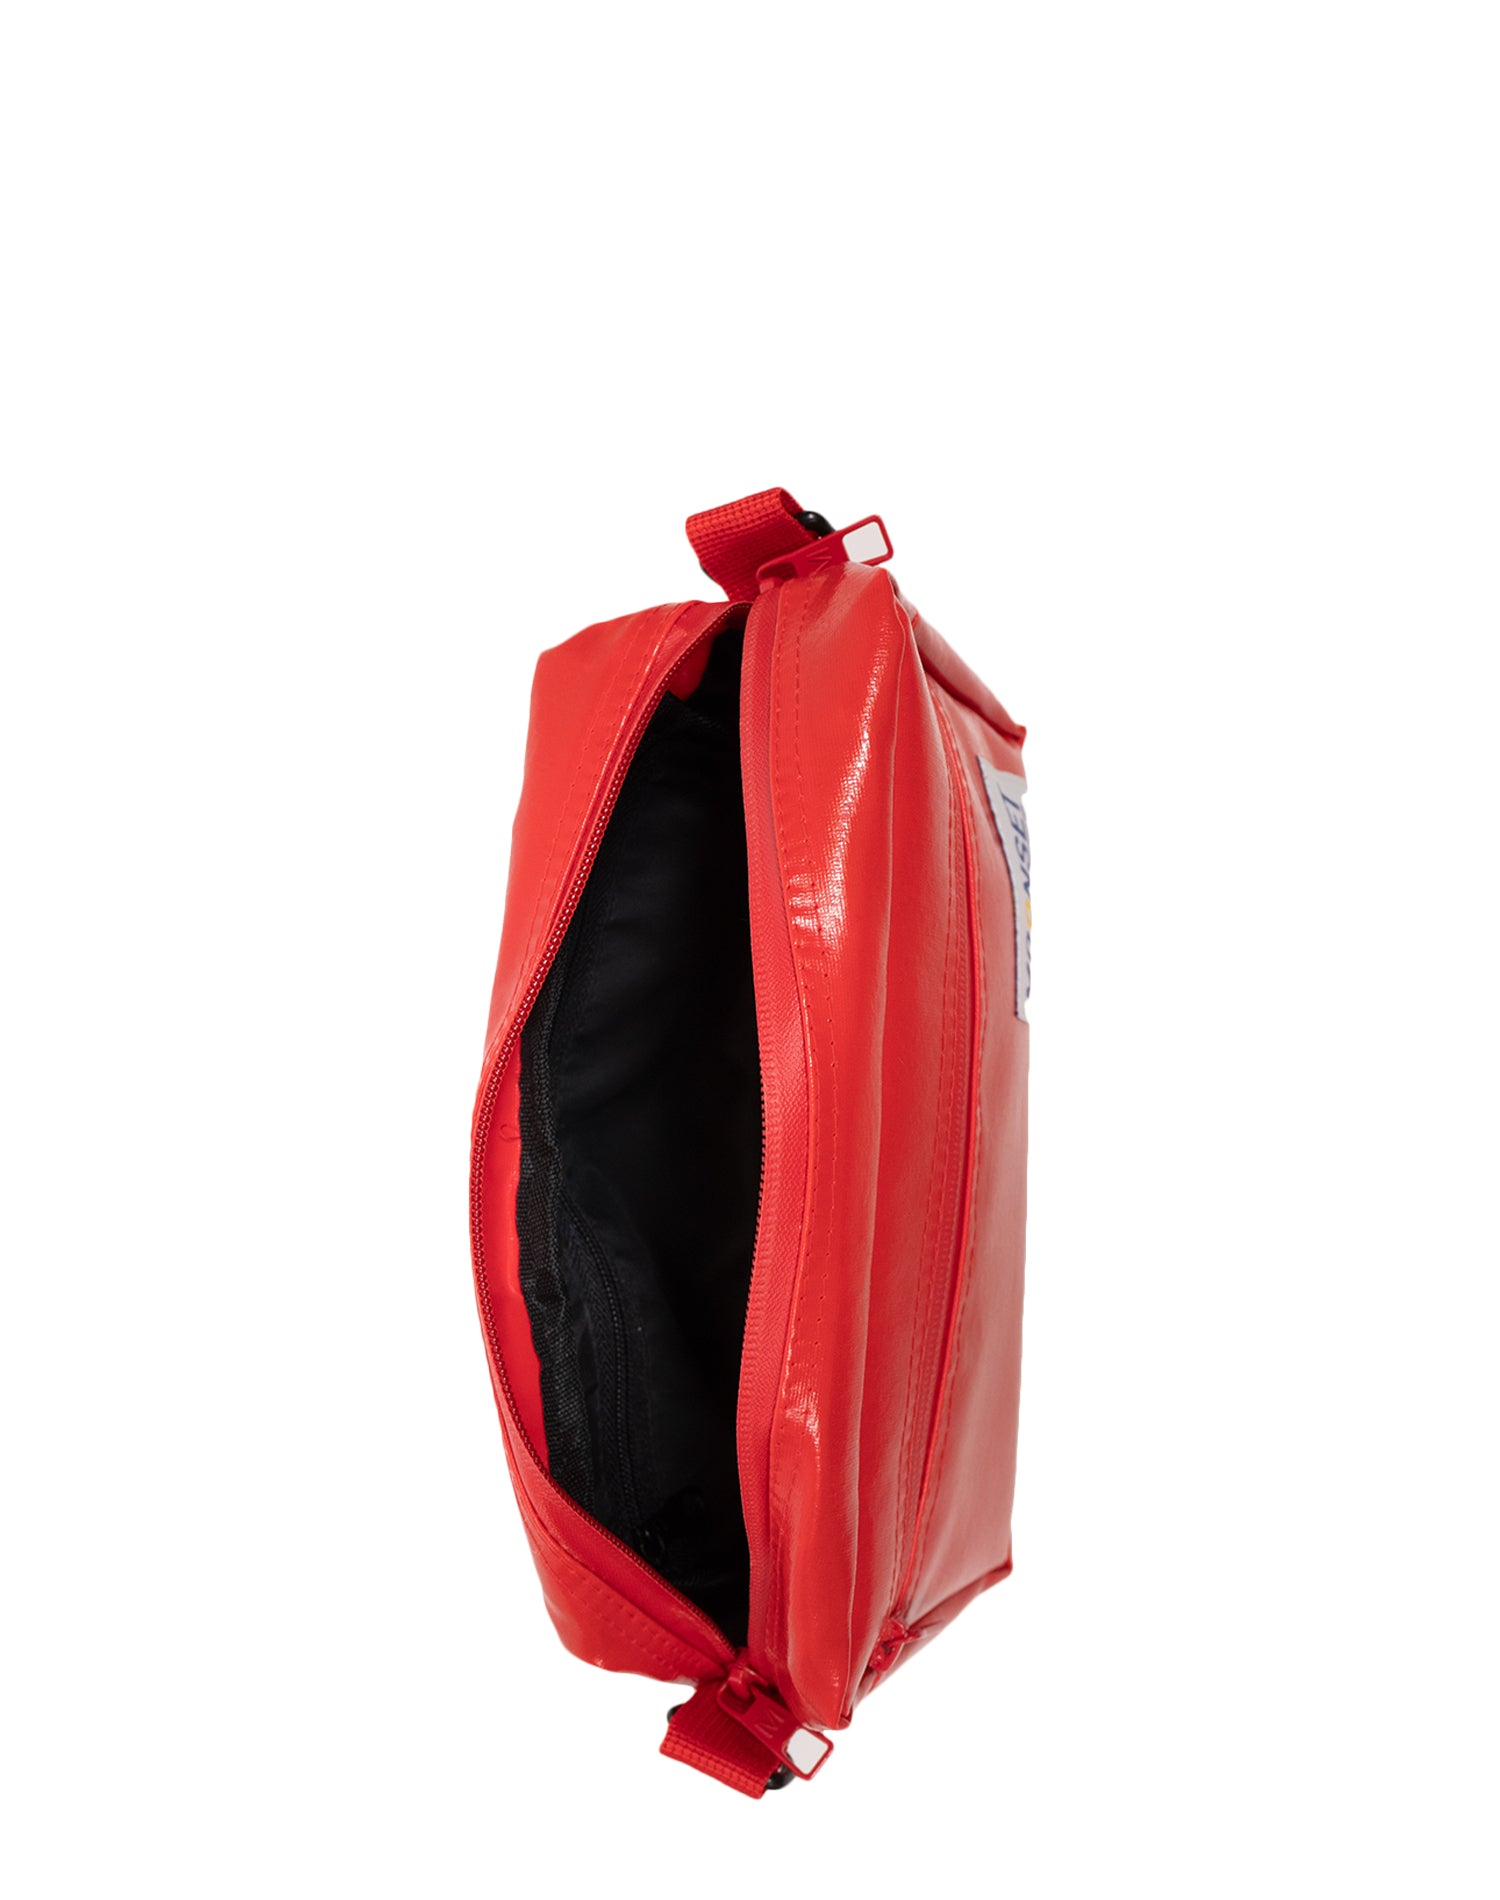 Red Waterproof Shoulder Bag.紅色防水單肩斜挎袋